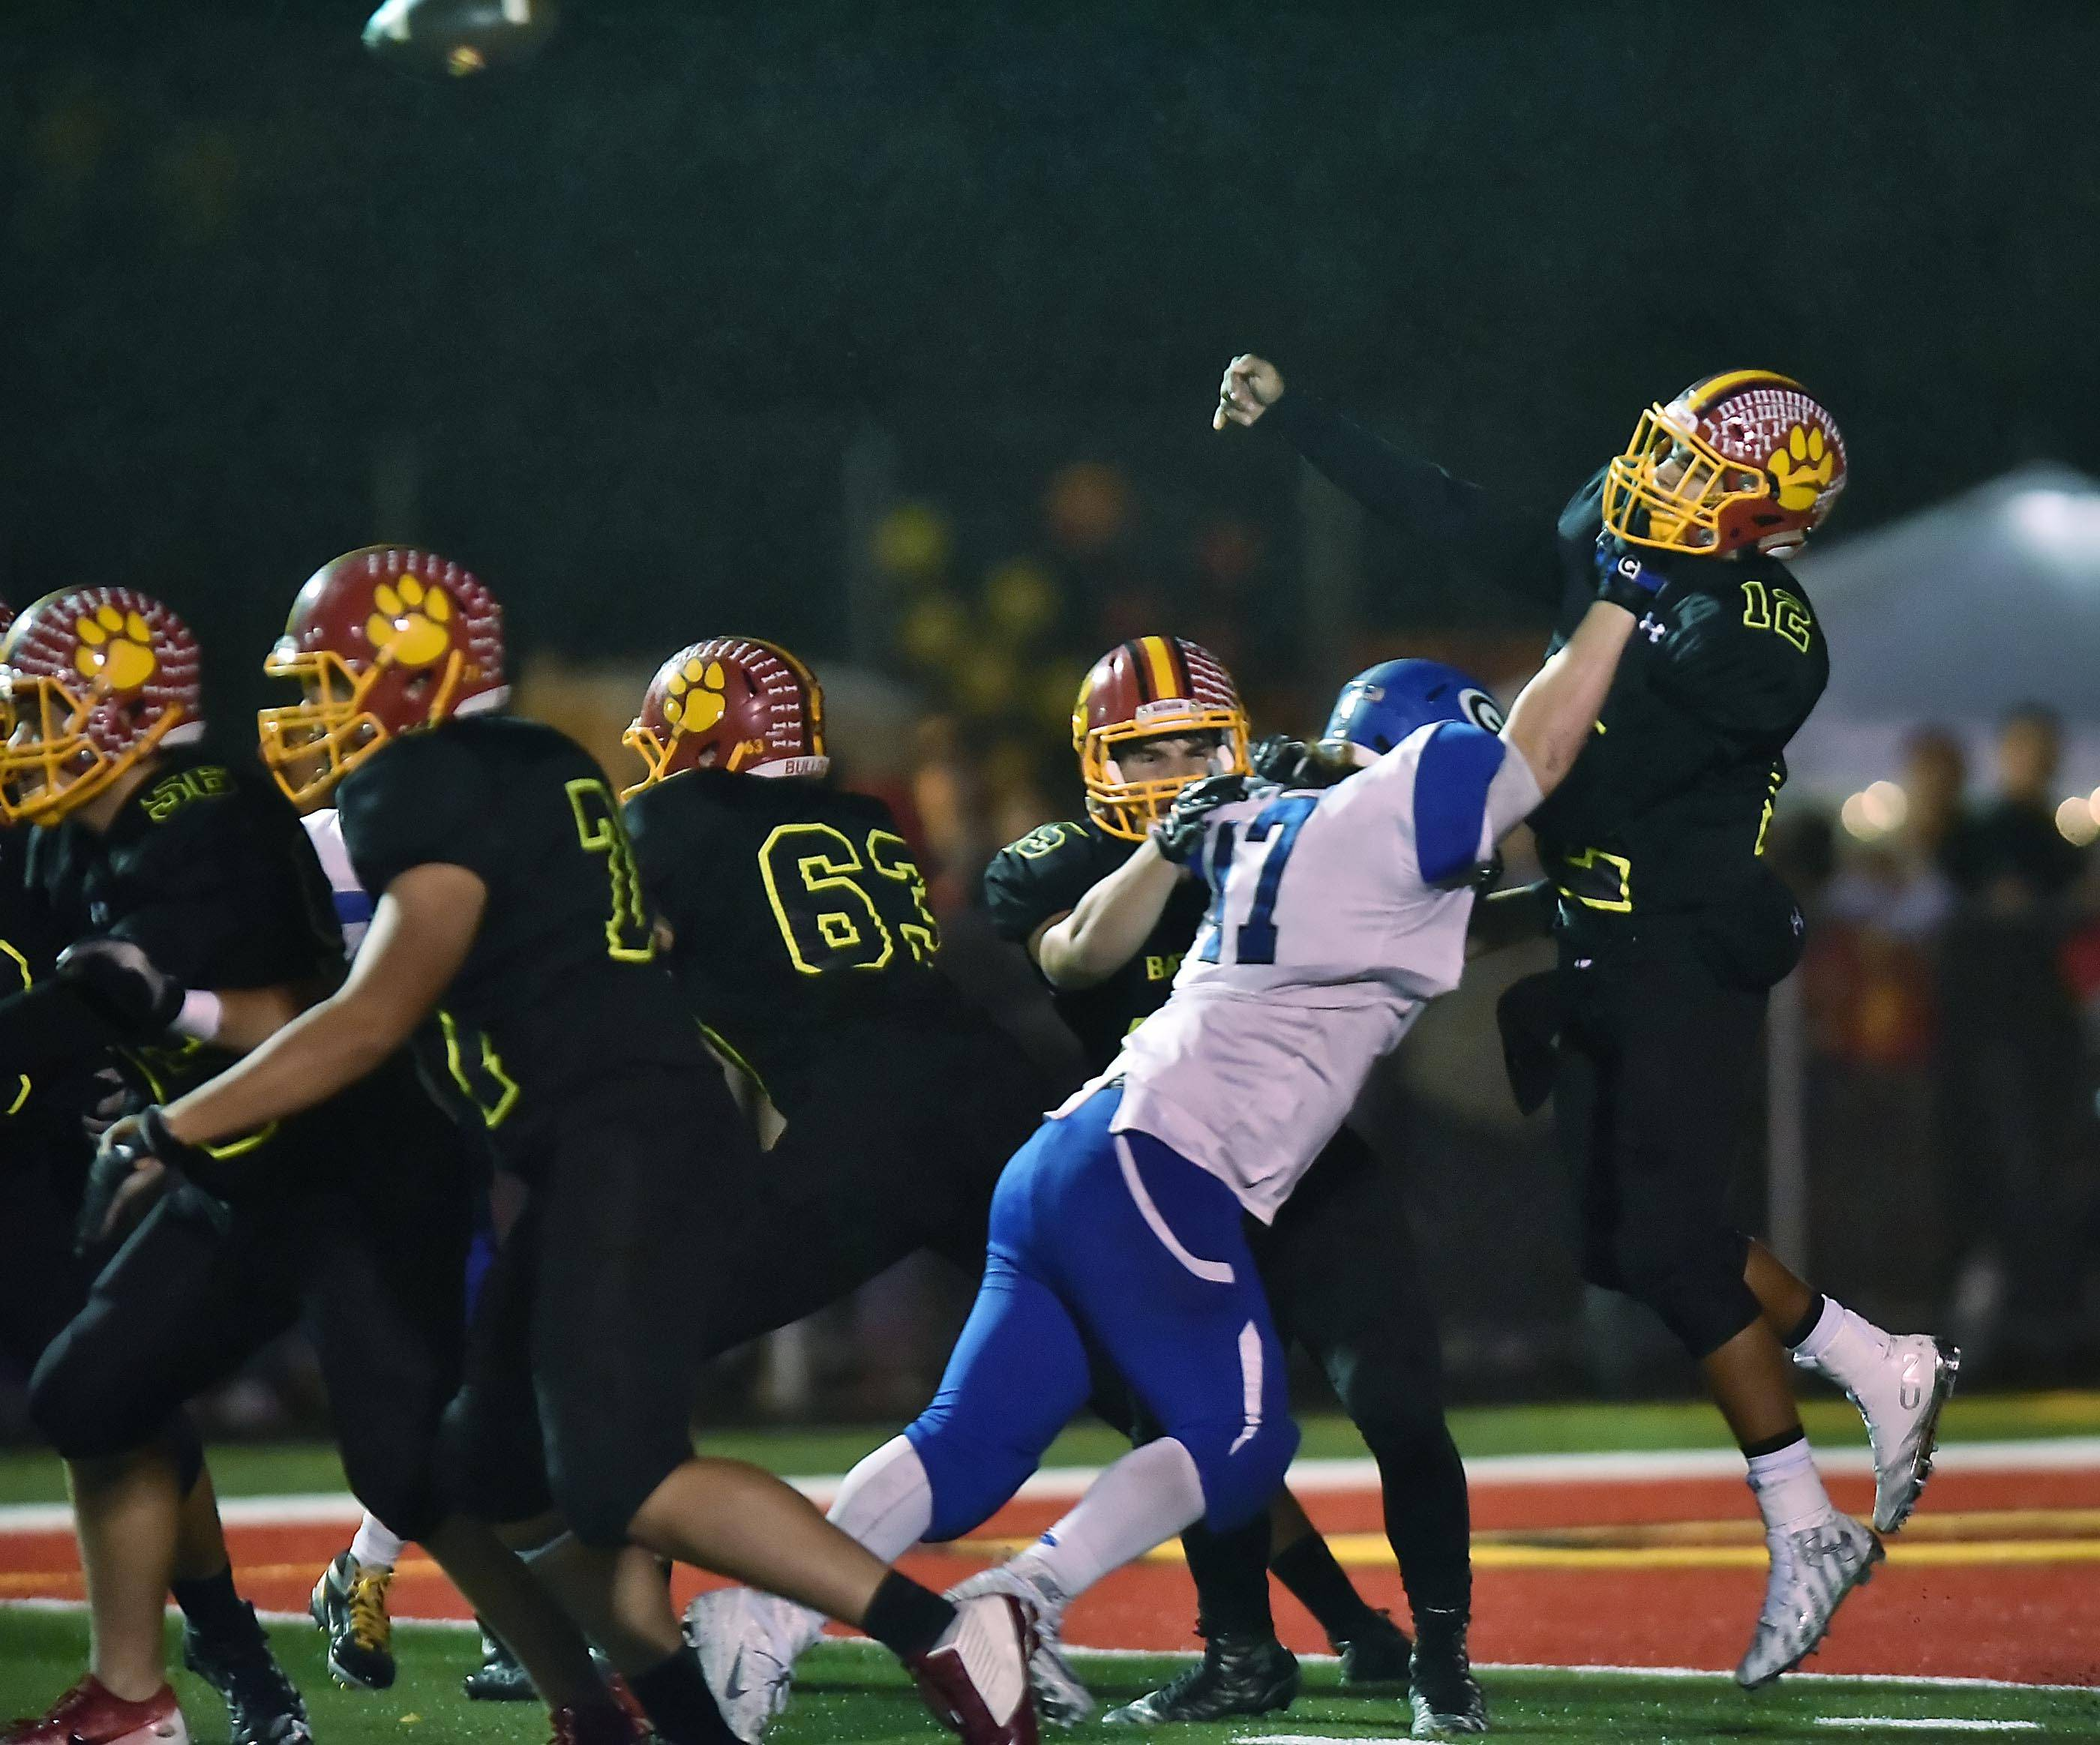 Batavia's Riley Cooper is able to make a pass in the rain as Geneva's Blake McAvoy hits him in the second quarter at Batavia Friday night.